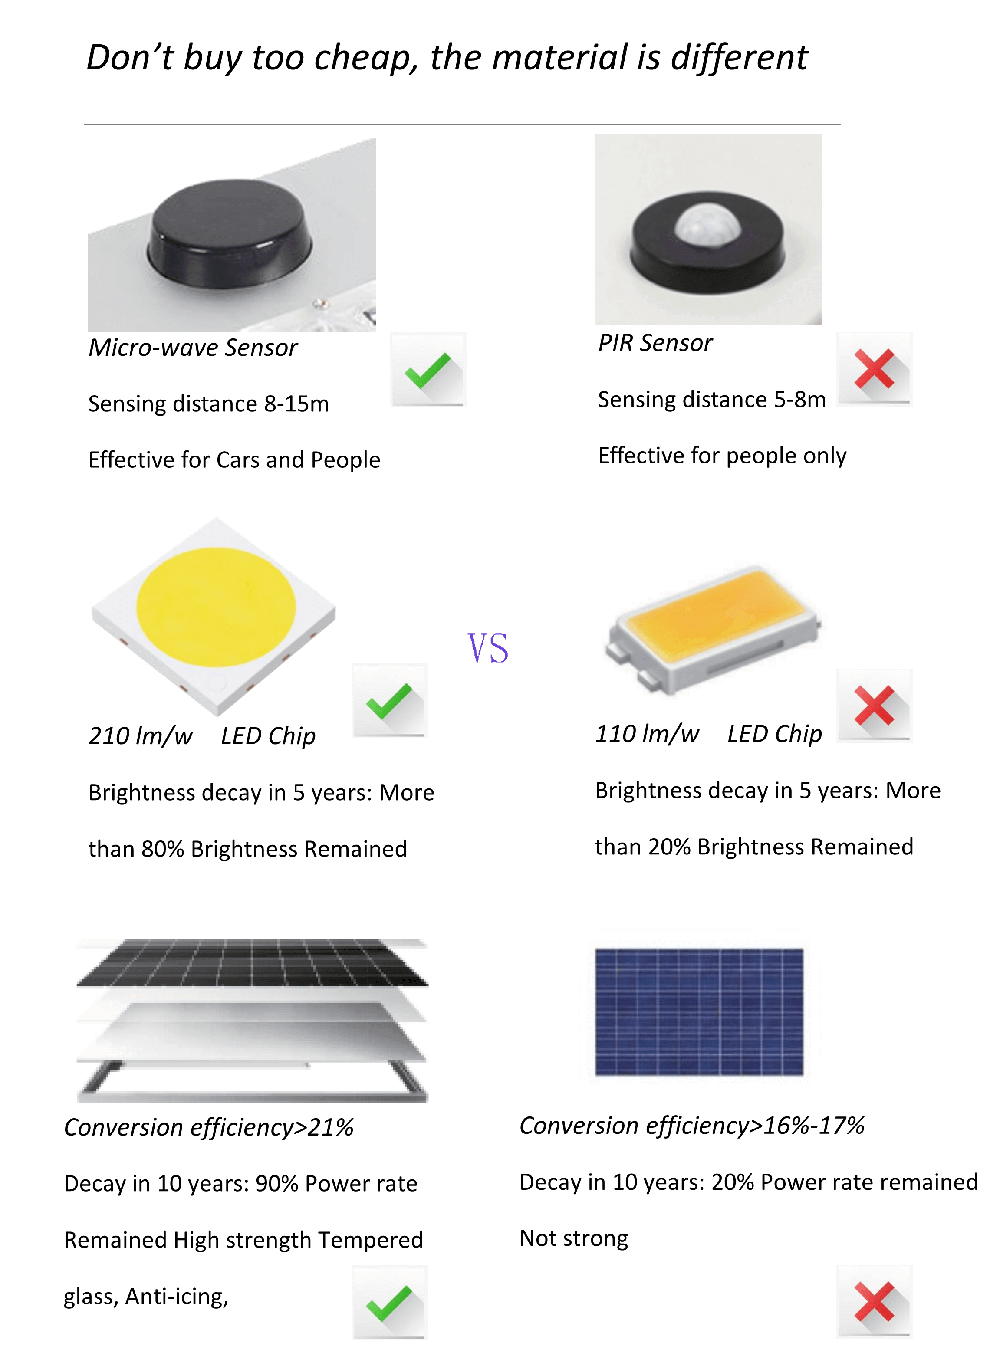 The material of solar street light is different